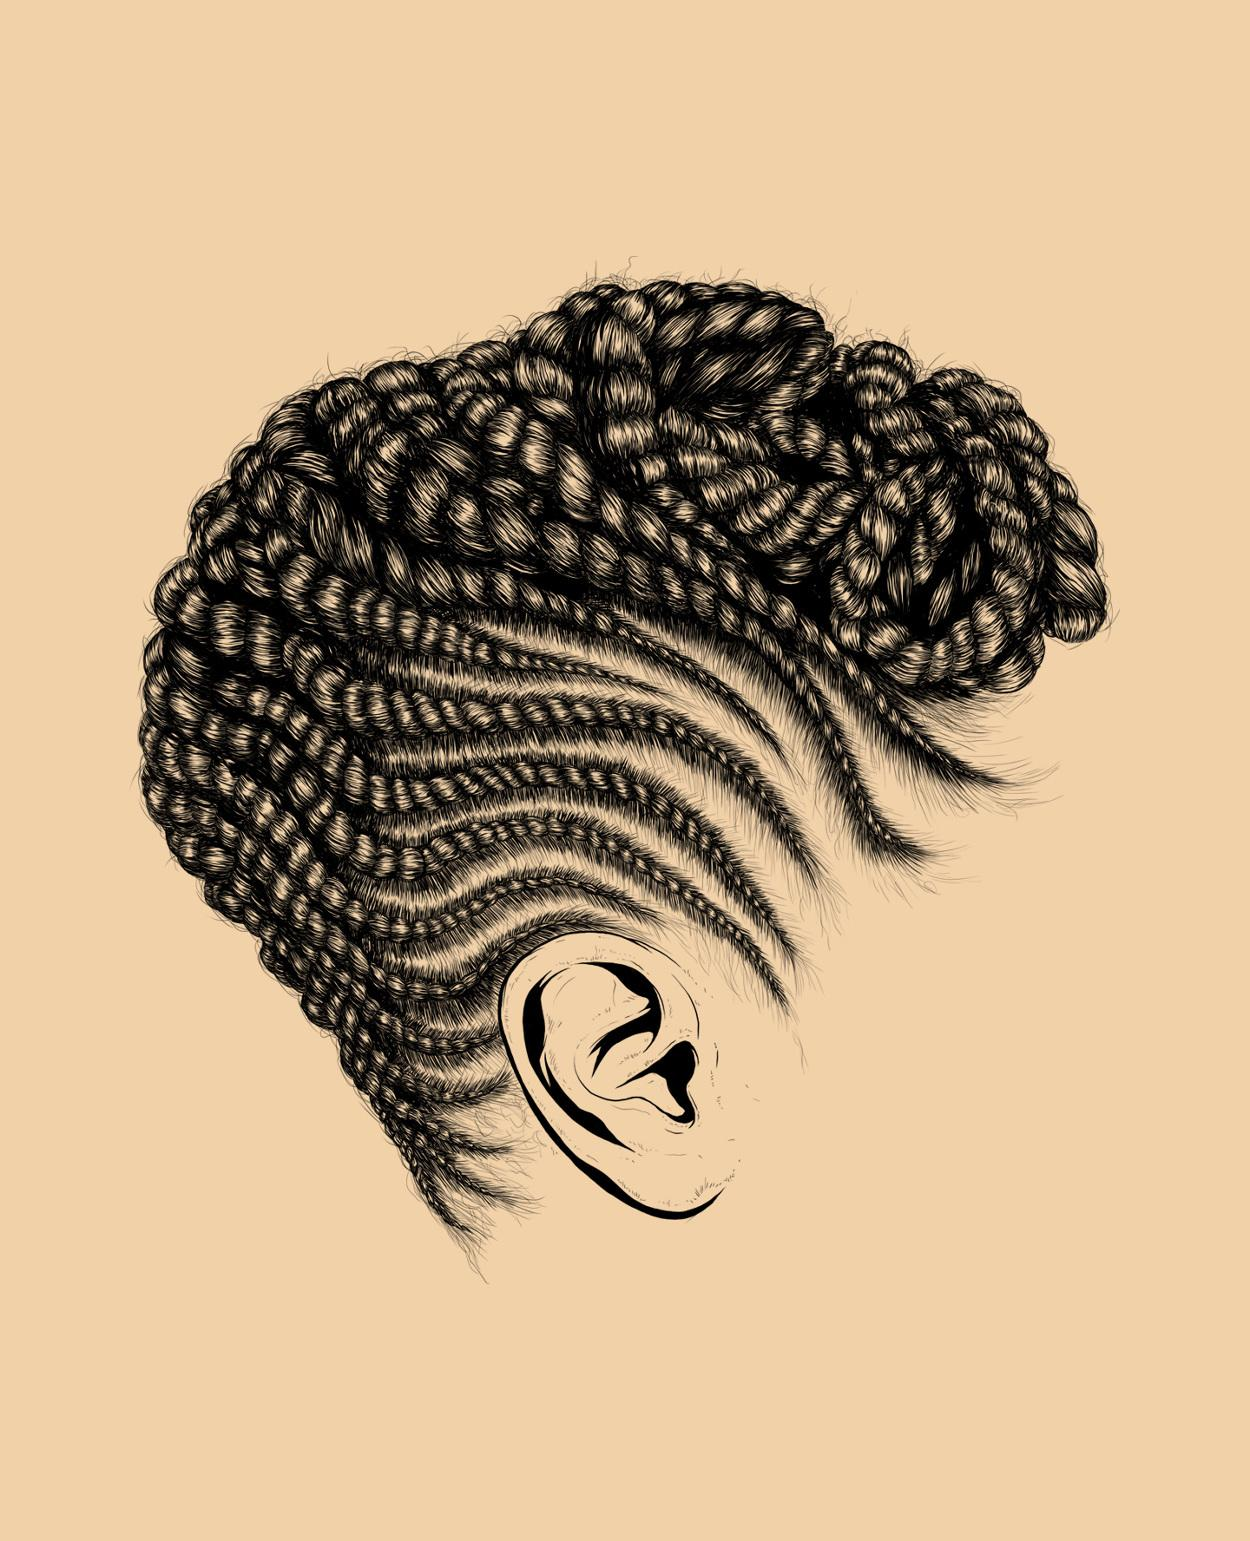 Wedding Hair Style Black Vector Art: These Intricate Illustrations Of Black Women's Hair